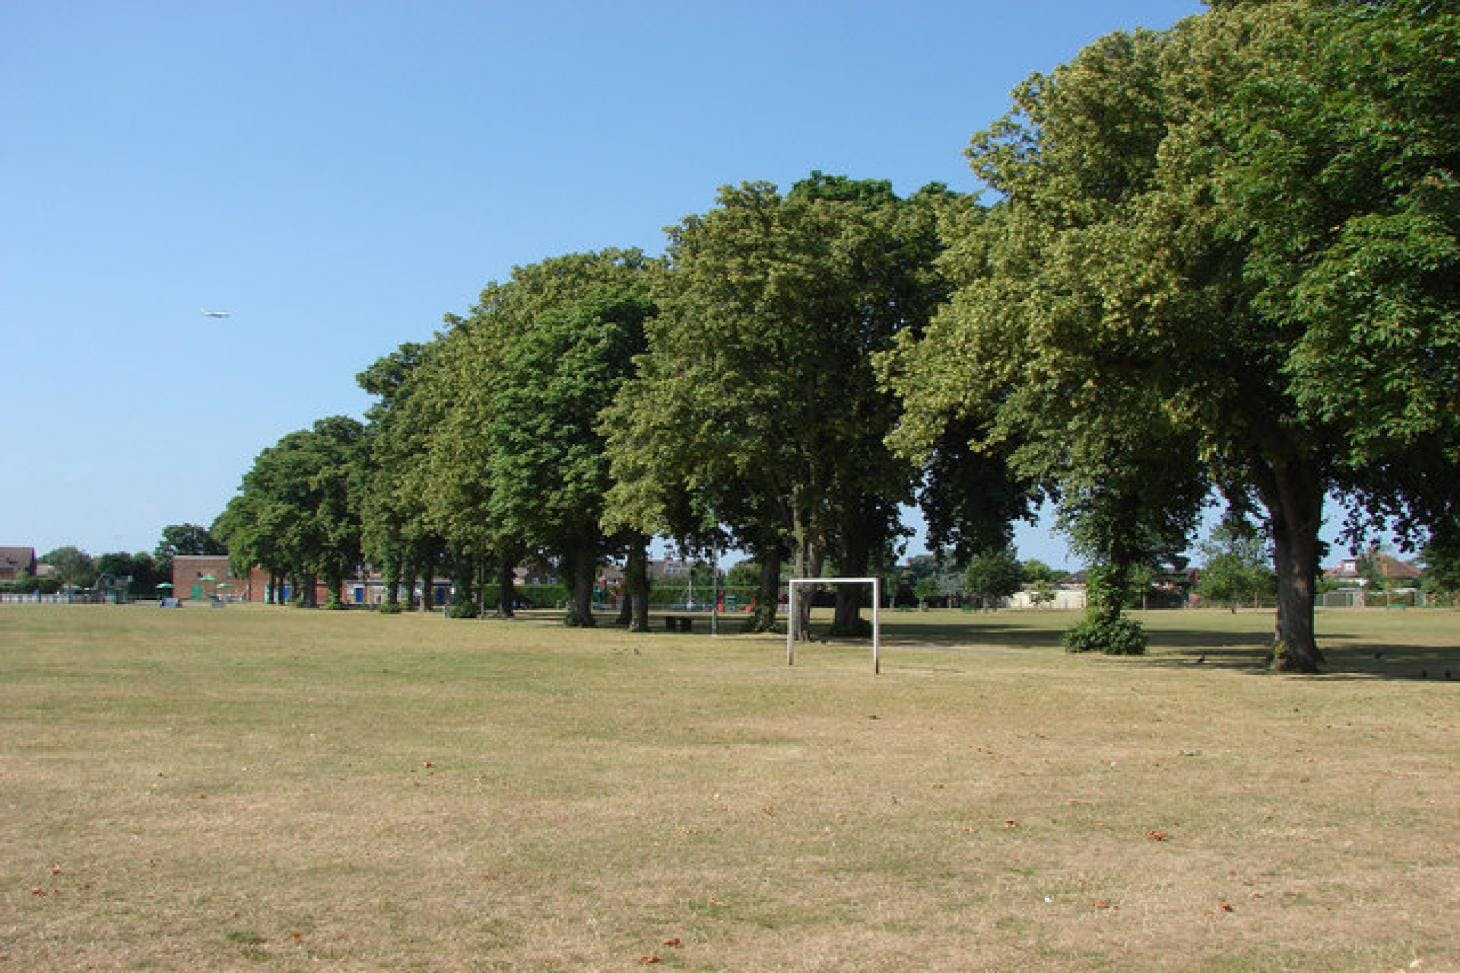 Old Windsor Recreation Ground 11 a side | Grass football pitch